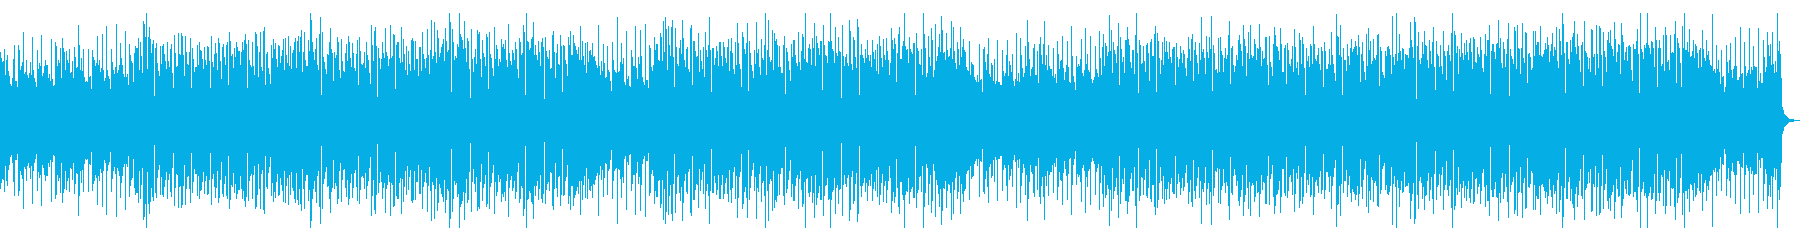 106bpm Refreshing Uplifting Acoustic Guitar's reproduced waveform